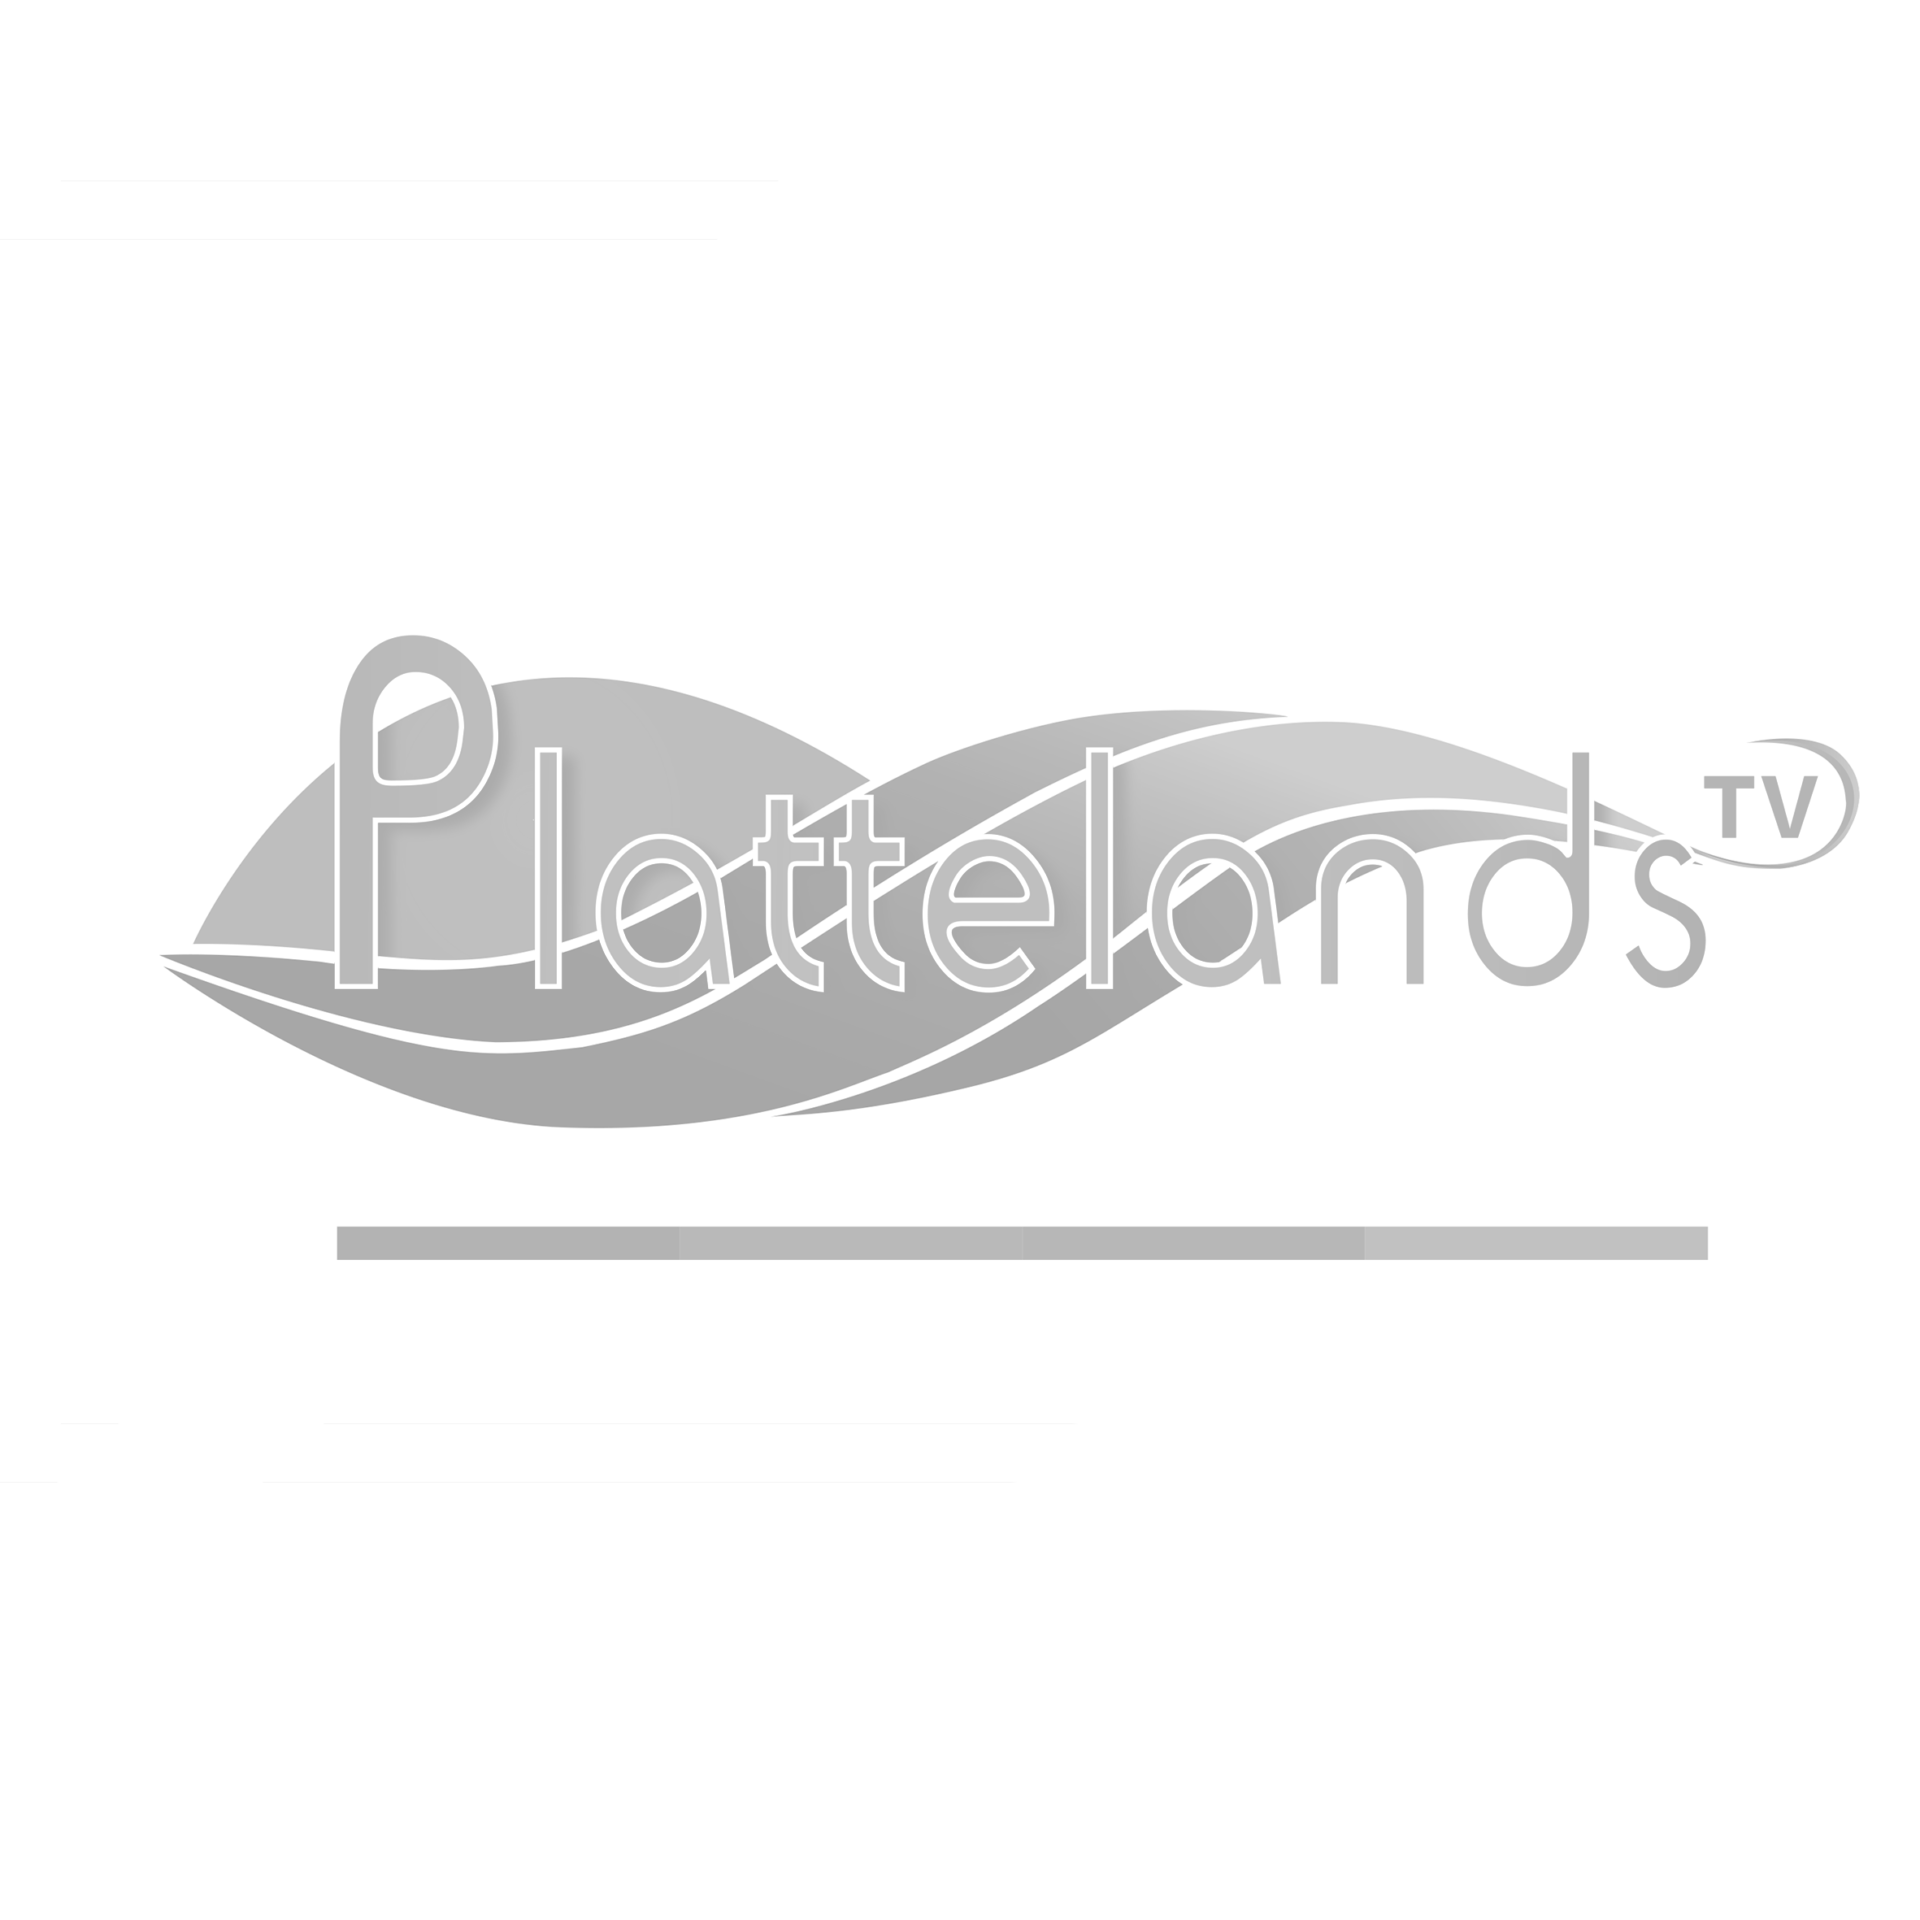 Plattelands TV Transfer